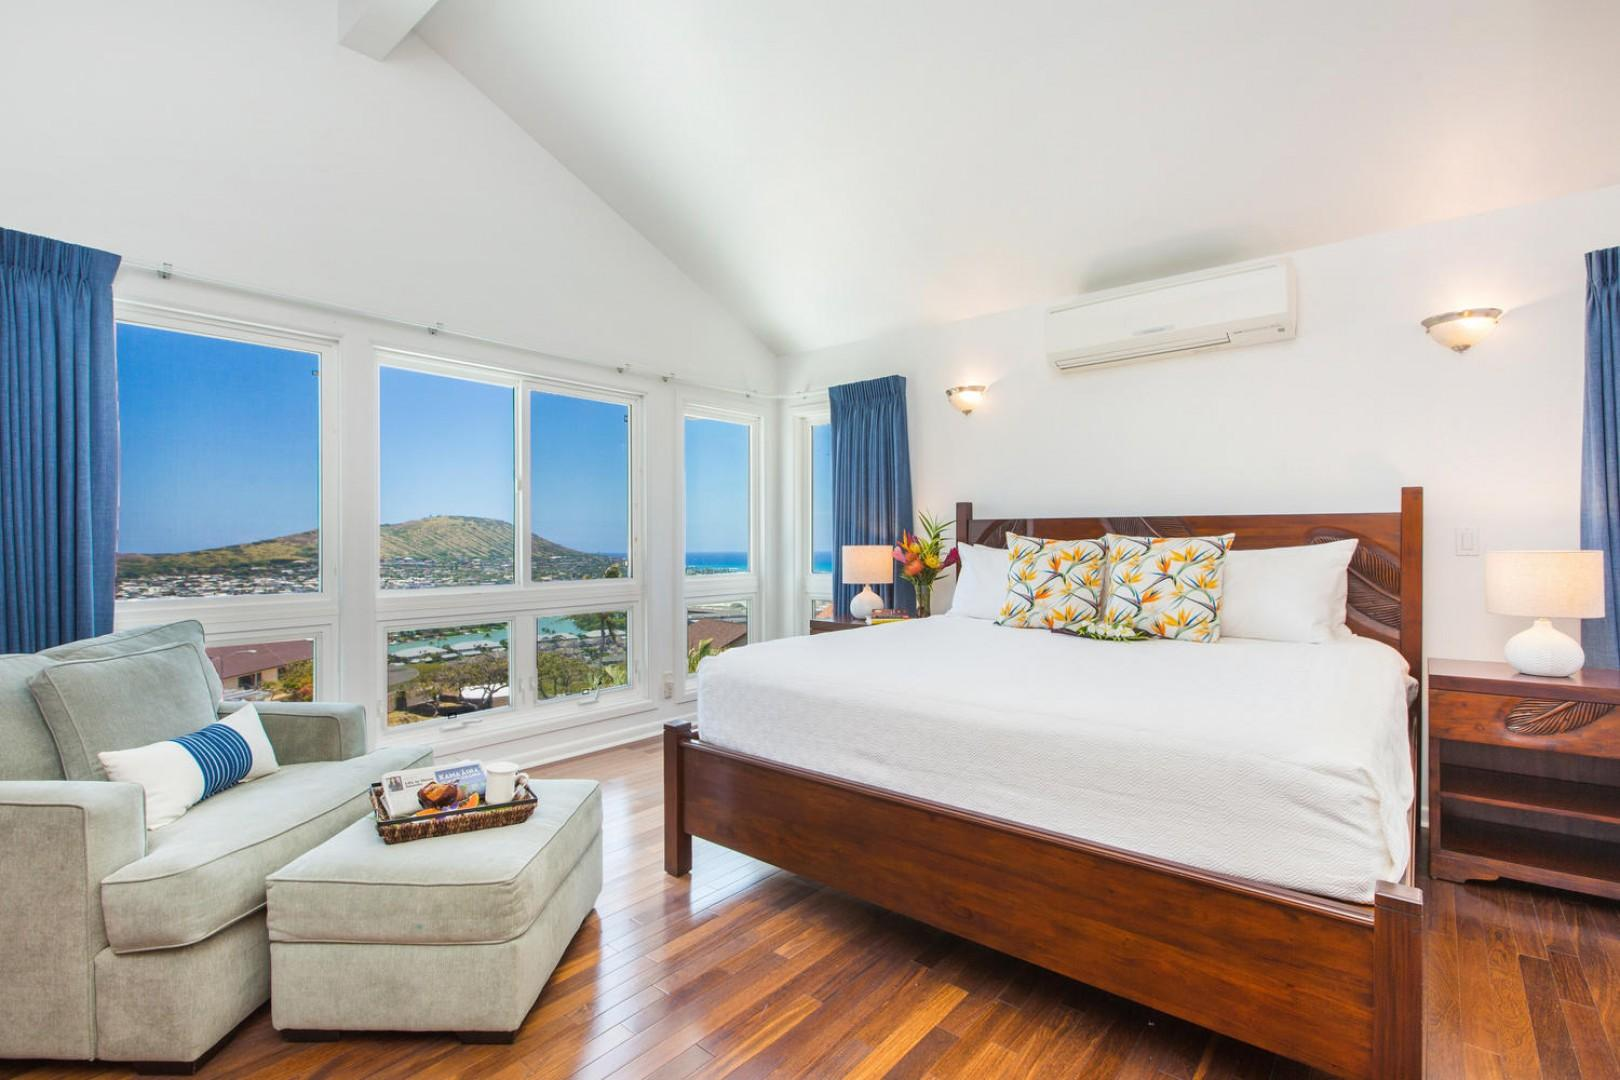 Upstairs master bedroom, overlooking Koko Crater, the Pacific and the marina.